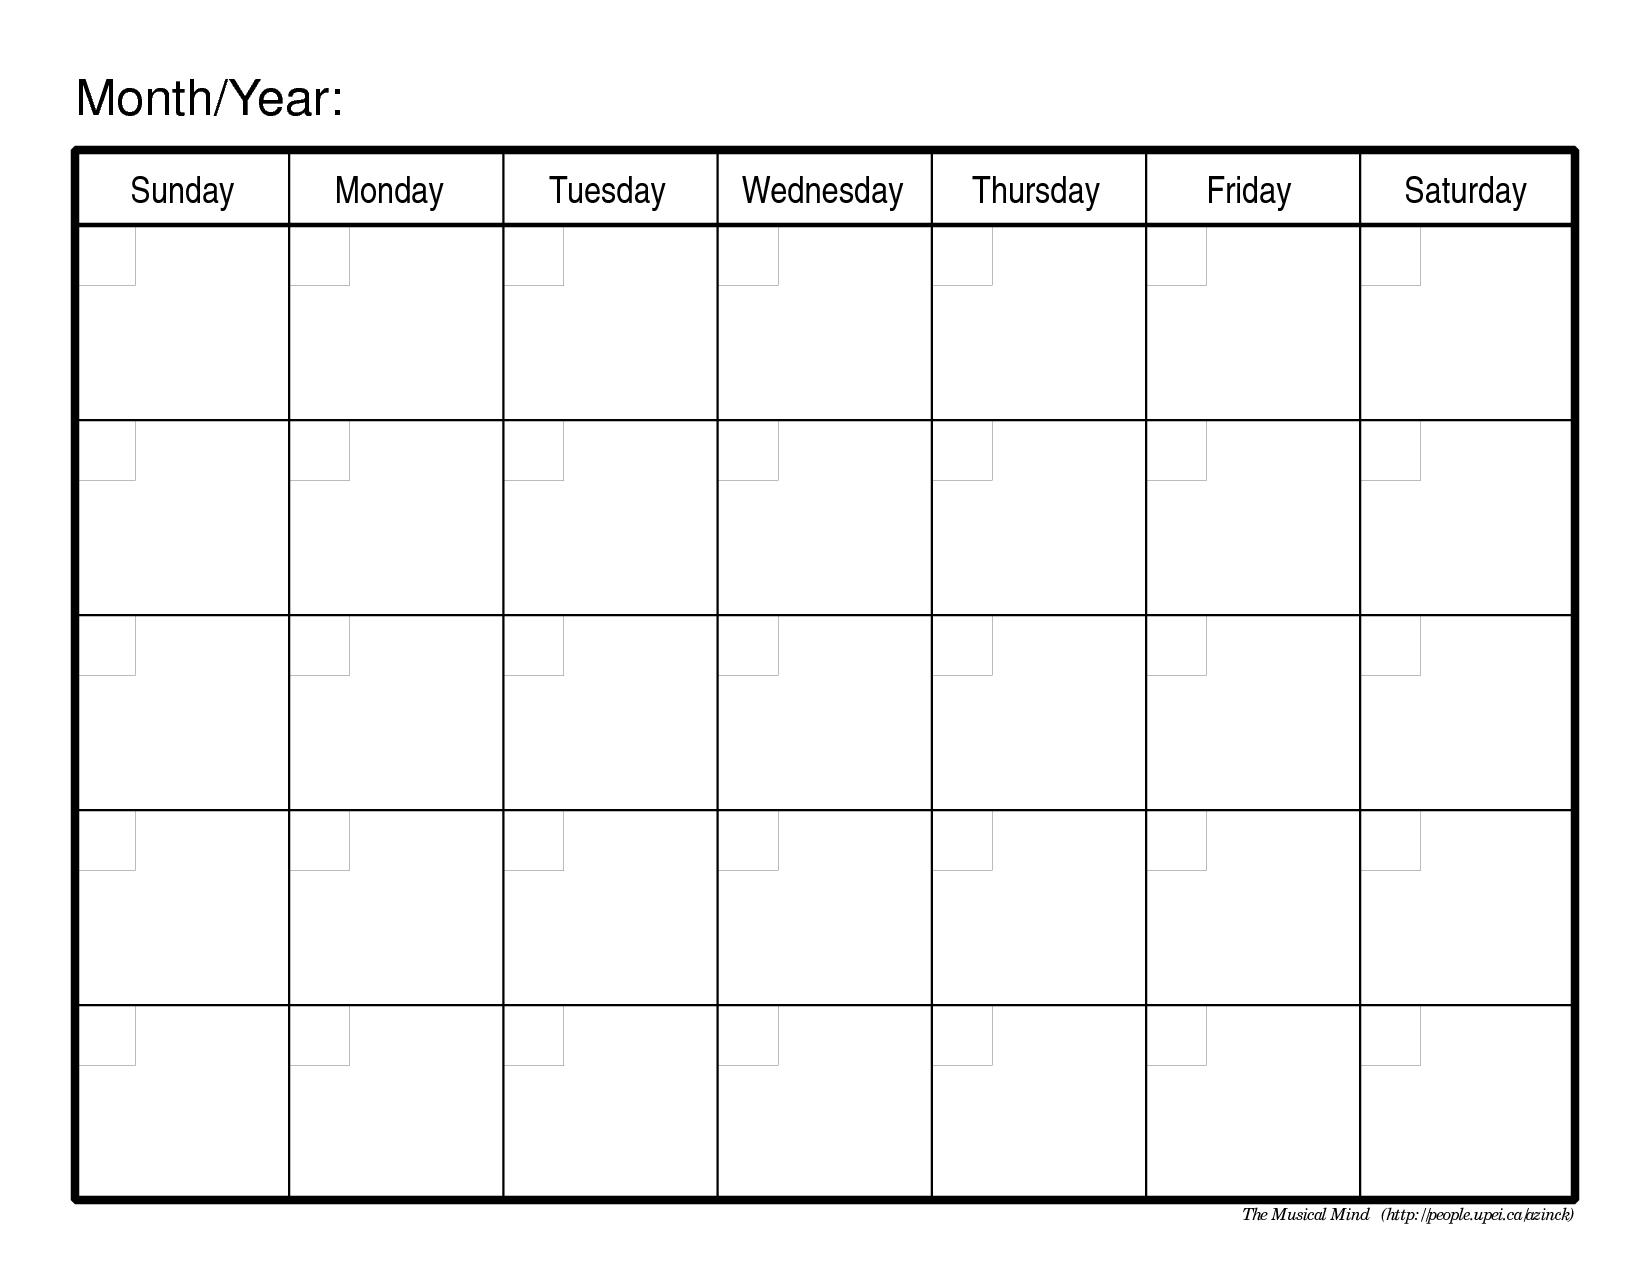 Blank+Monthly+Calendar+Template In 2020 | Printable Blank intended for Blank Monthly Calendar Template To Fill In